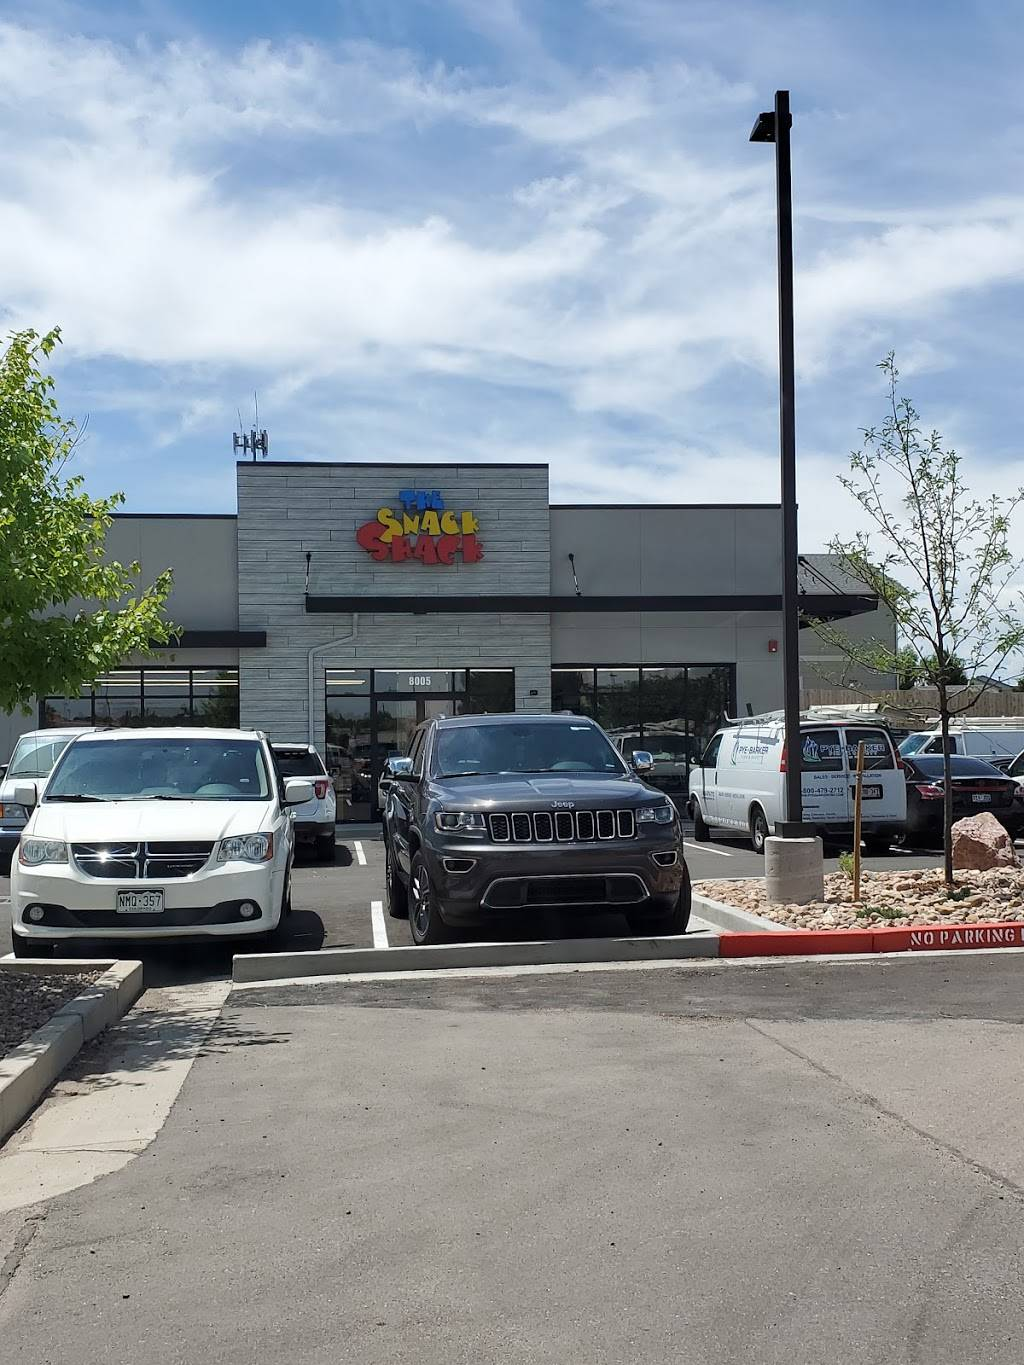 The Snack Shack - restaurant  | Photo 1 of 1 | Address: 8005 Fountain Mesa Rd, Fountain, CO 80817, USA | Phone: (719) 375-5706